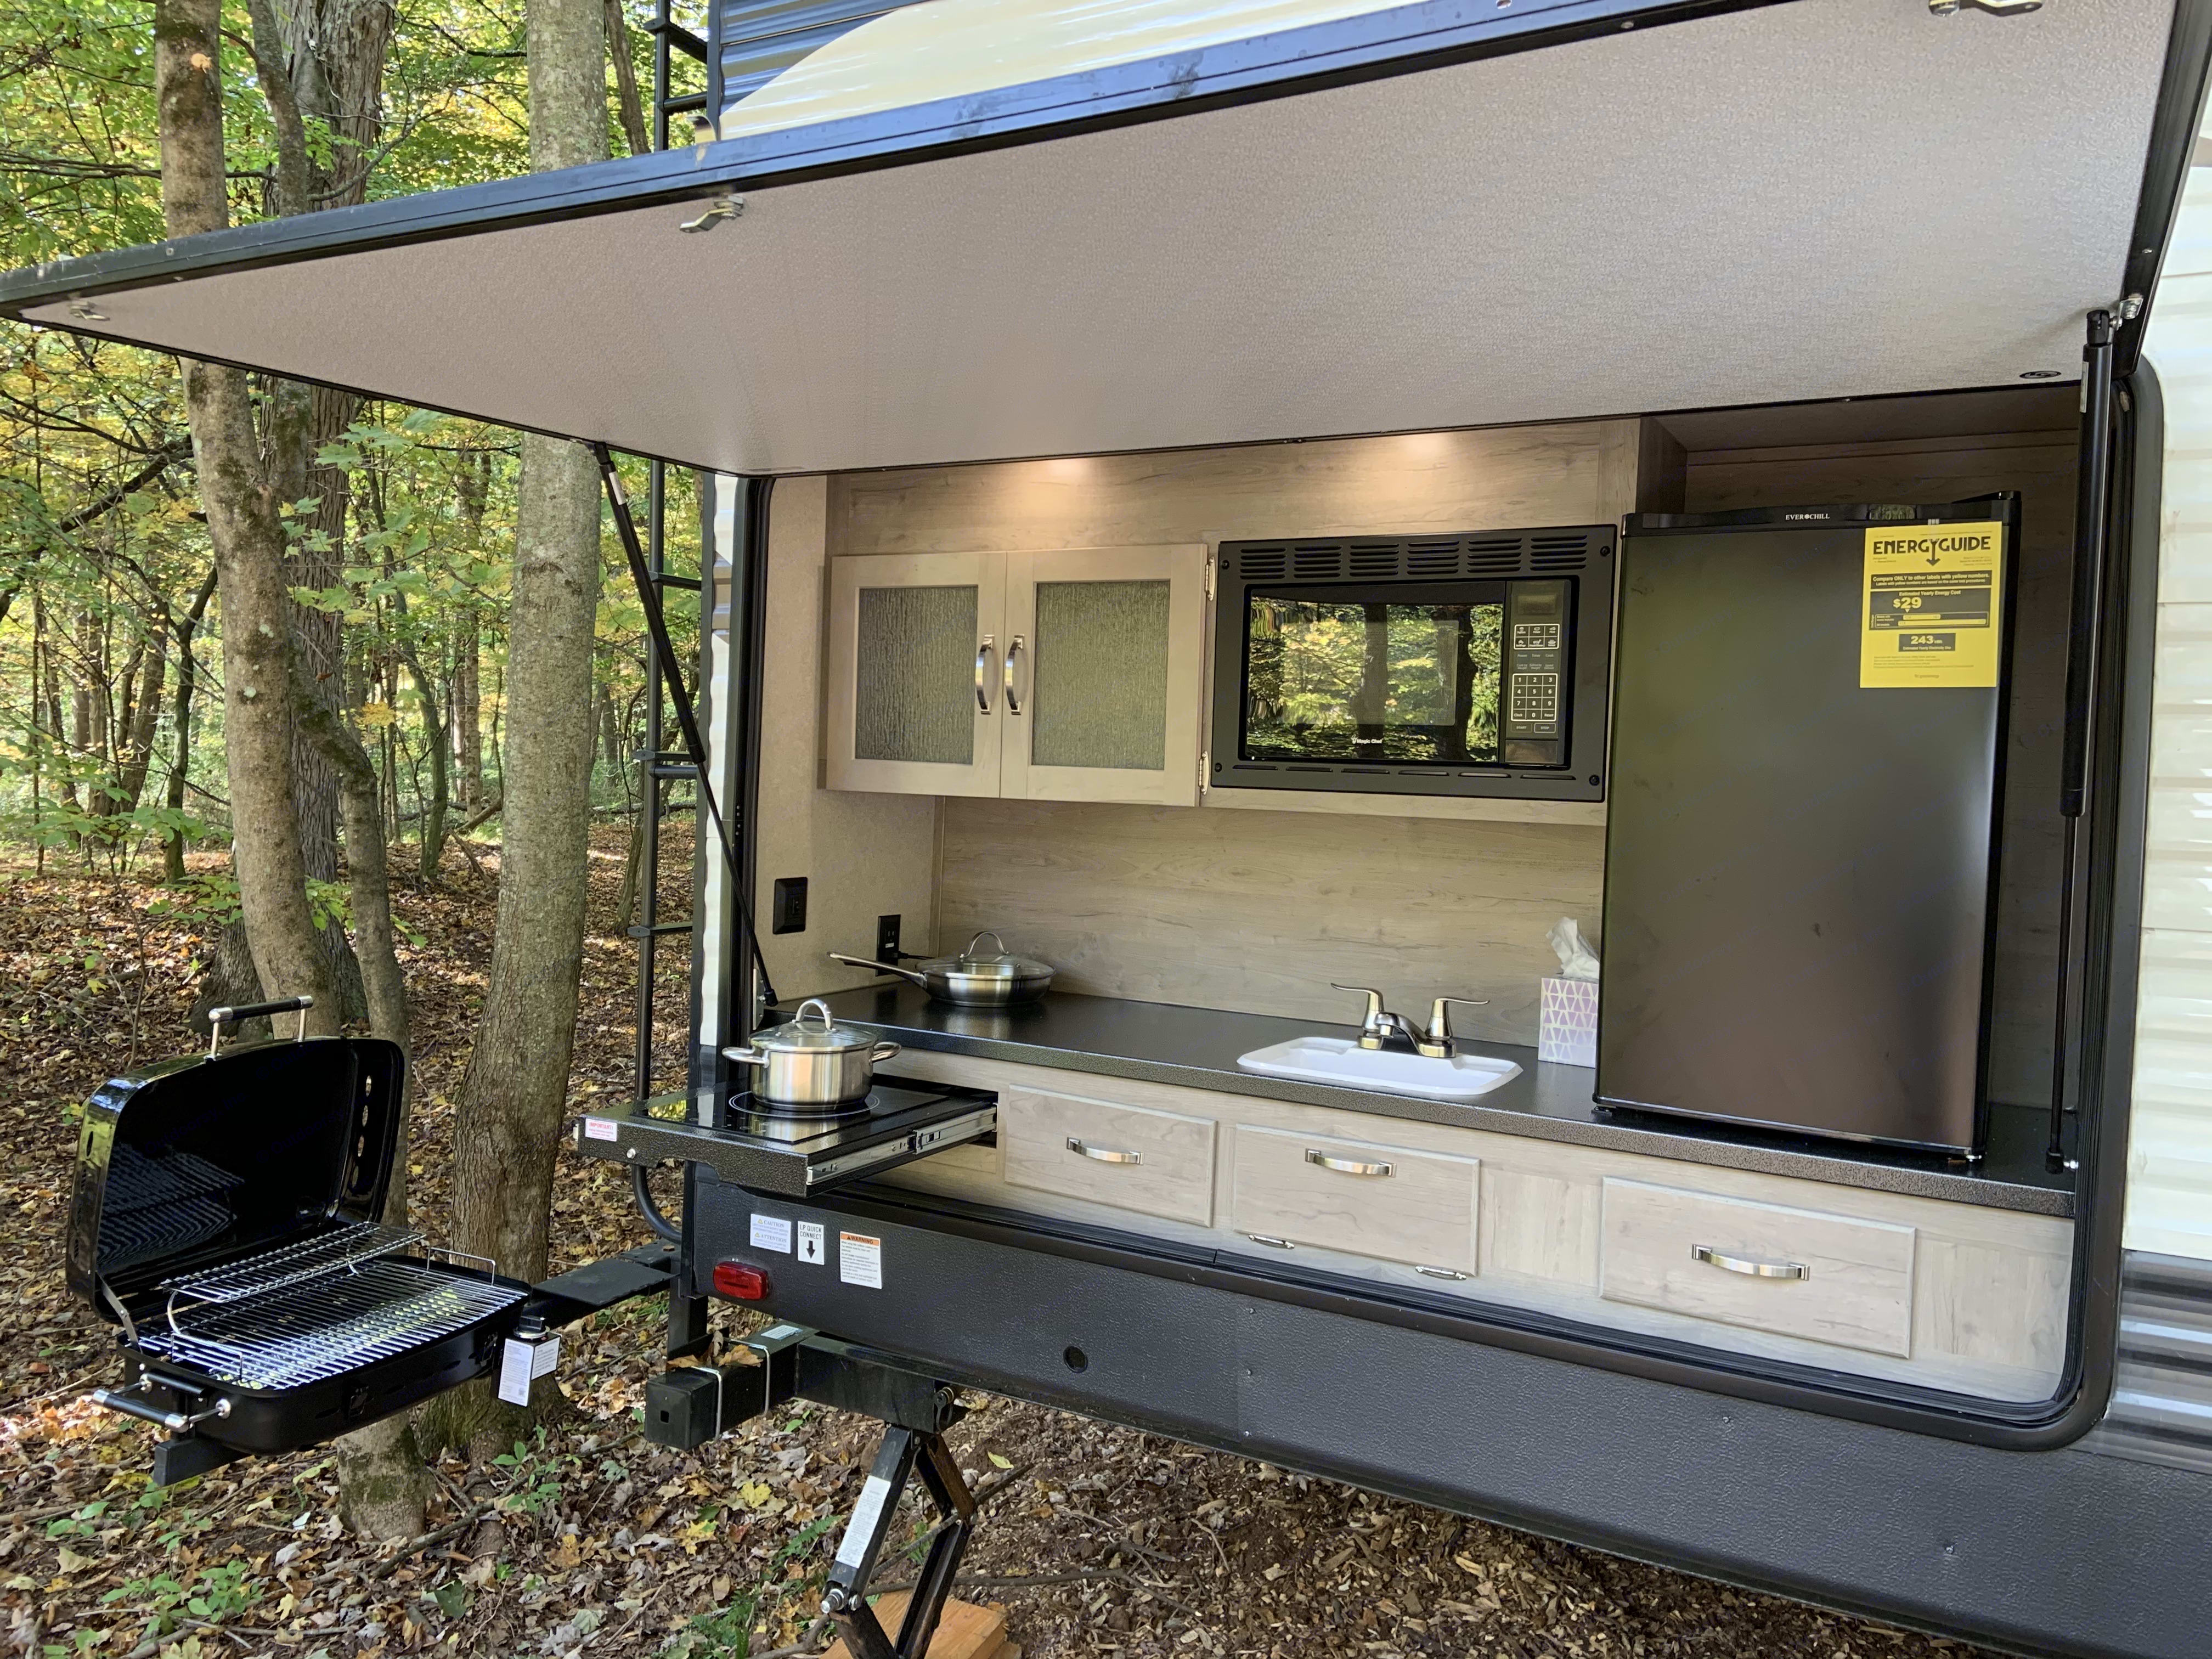 Full Outdoor Kitchen. Propane Grill, Induction Cooktop, Sink, Microwave, Refrigerator, and Storage!. Palomino Puma 2019